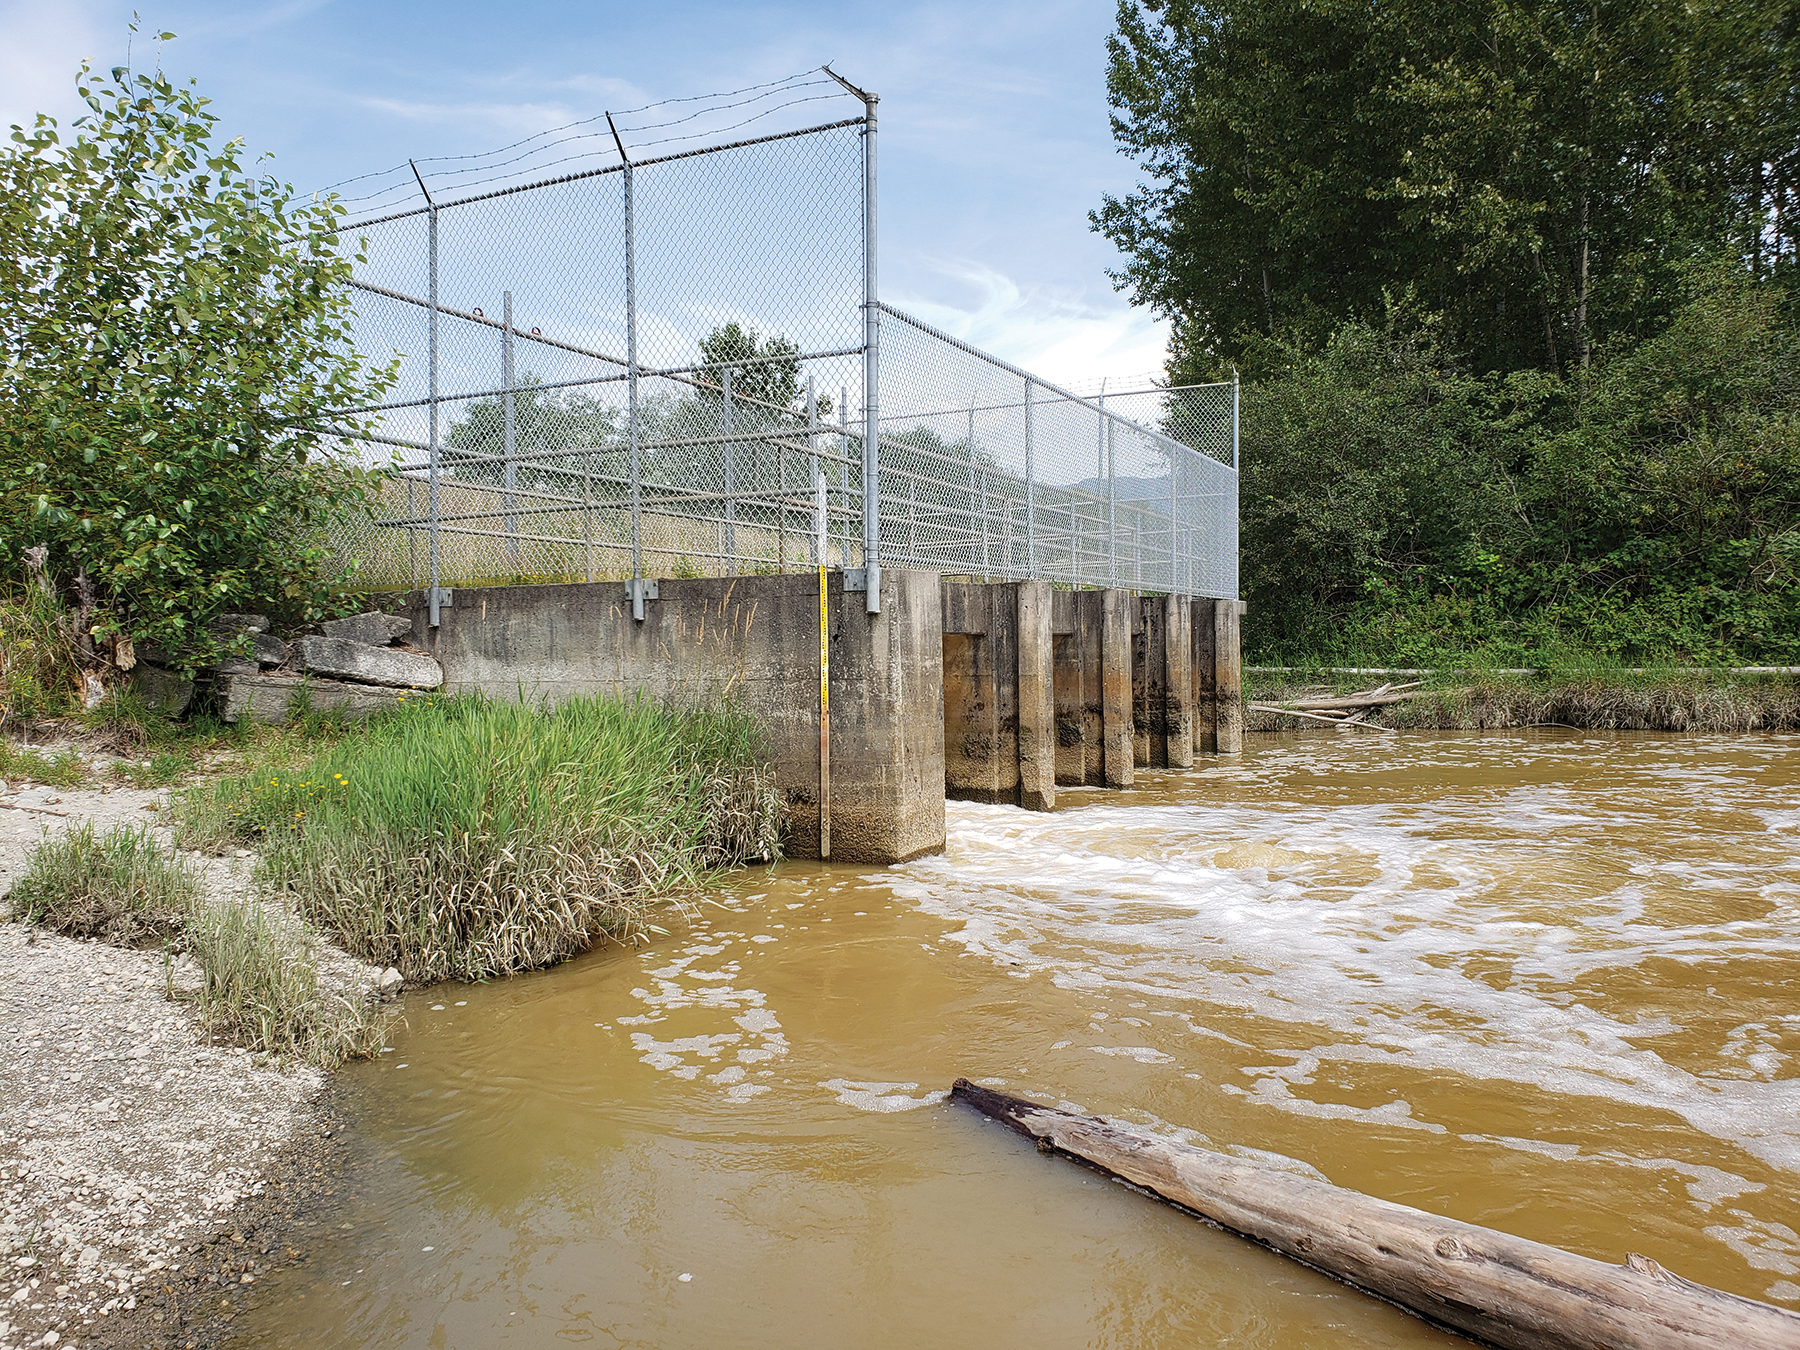 Pump station – Water flows out of a side-channel into the Pitt River after pumps are turned on | author photo